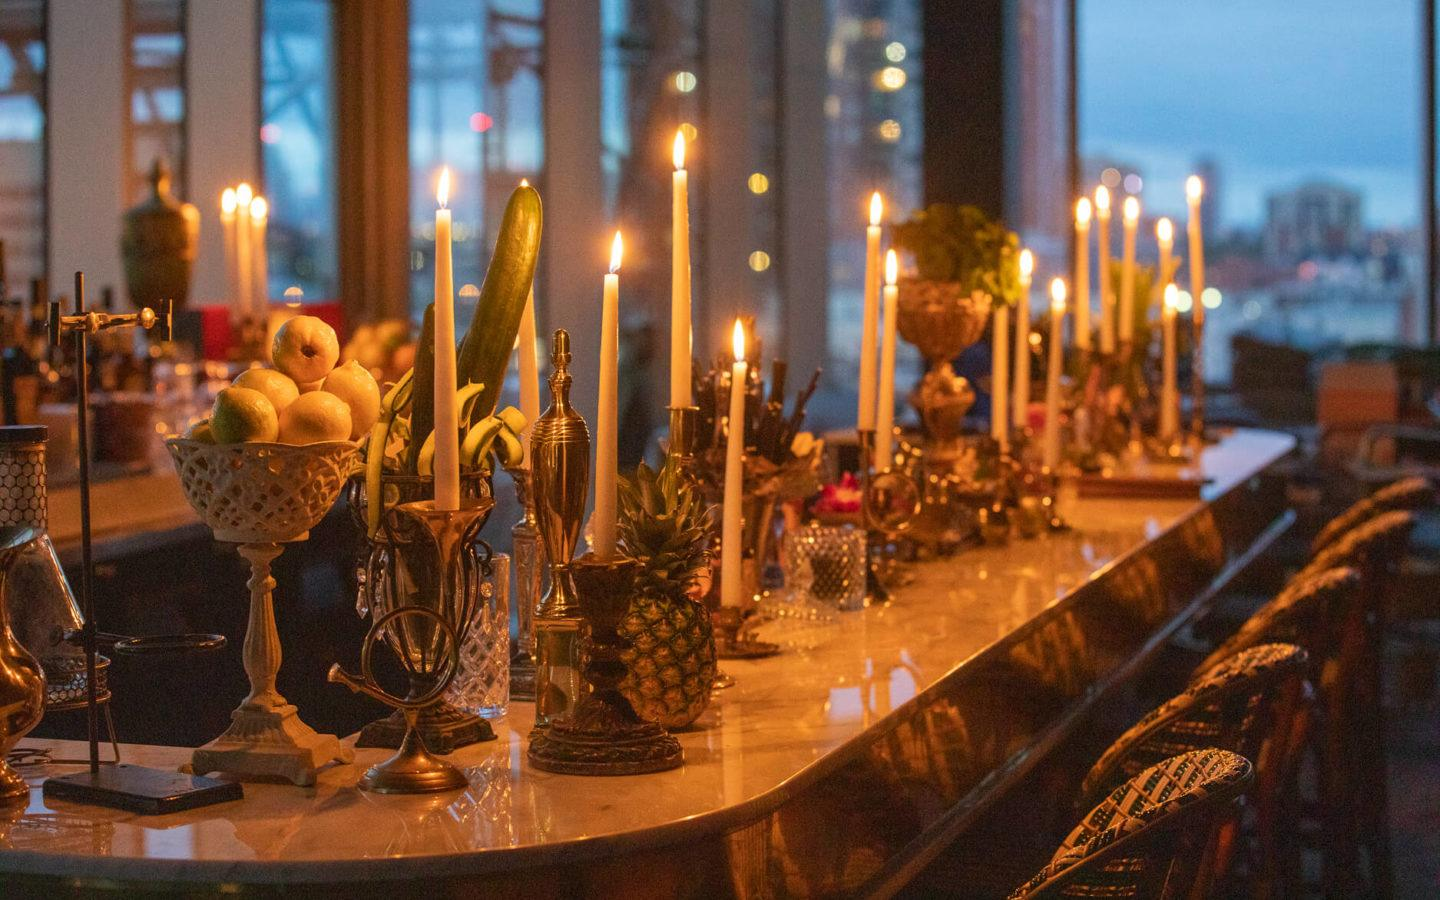 Alchemy bar lined with candles at dusk in downtown Edmonton